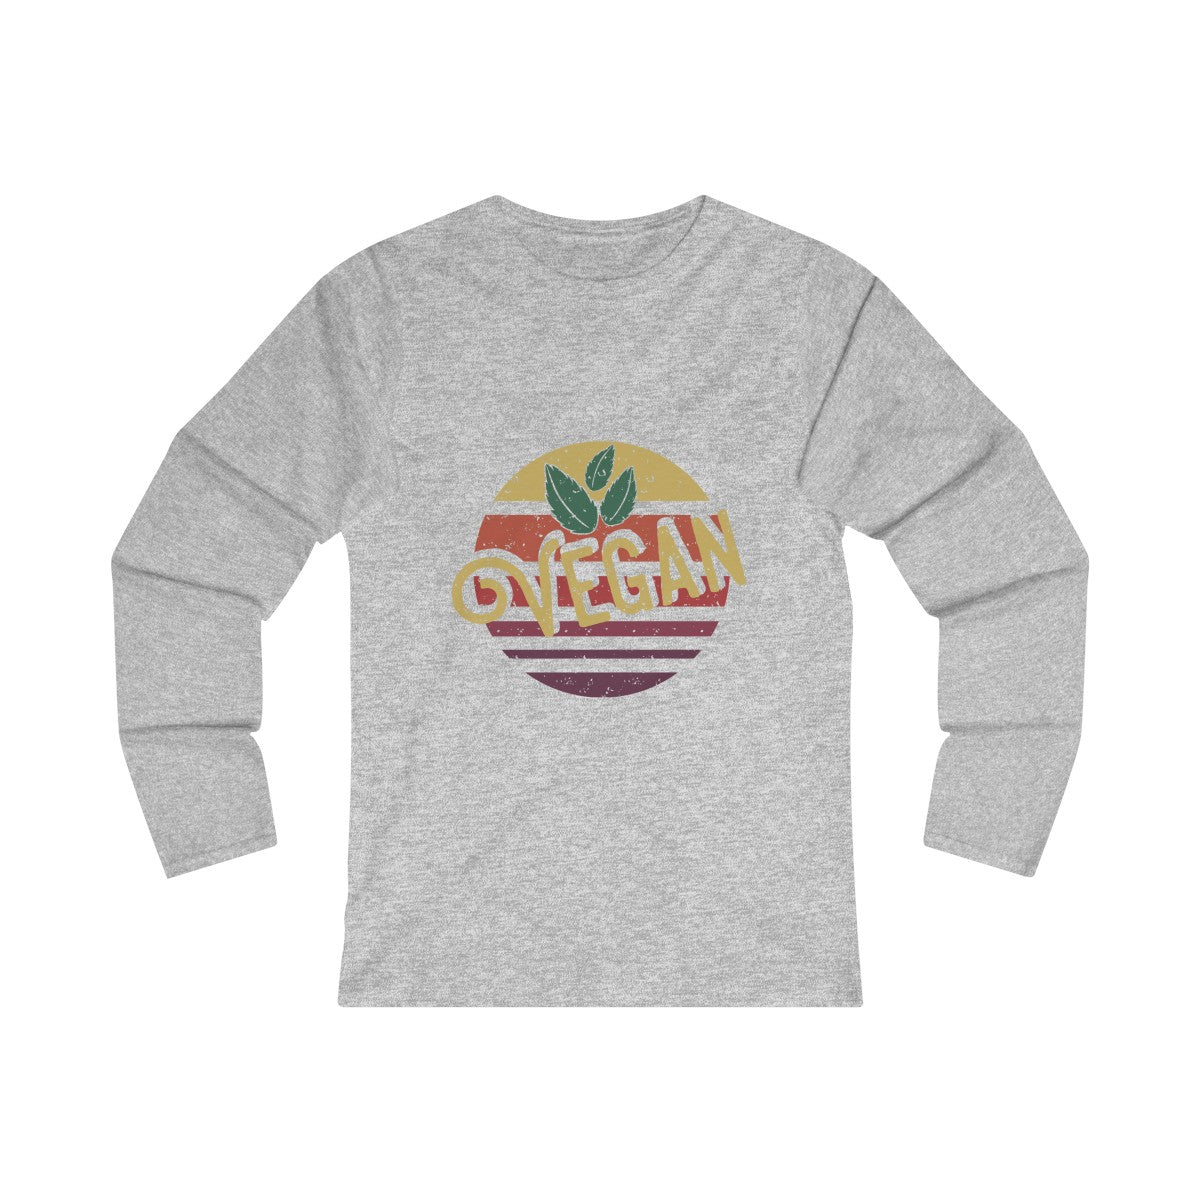 70s Retro Vegan - Long Sleeve T-Shirt - My Vegan Menu